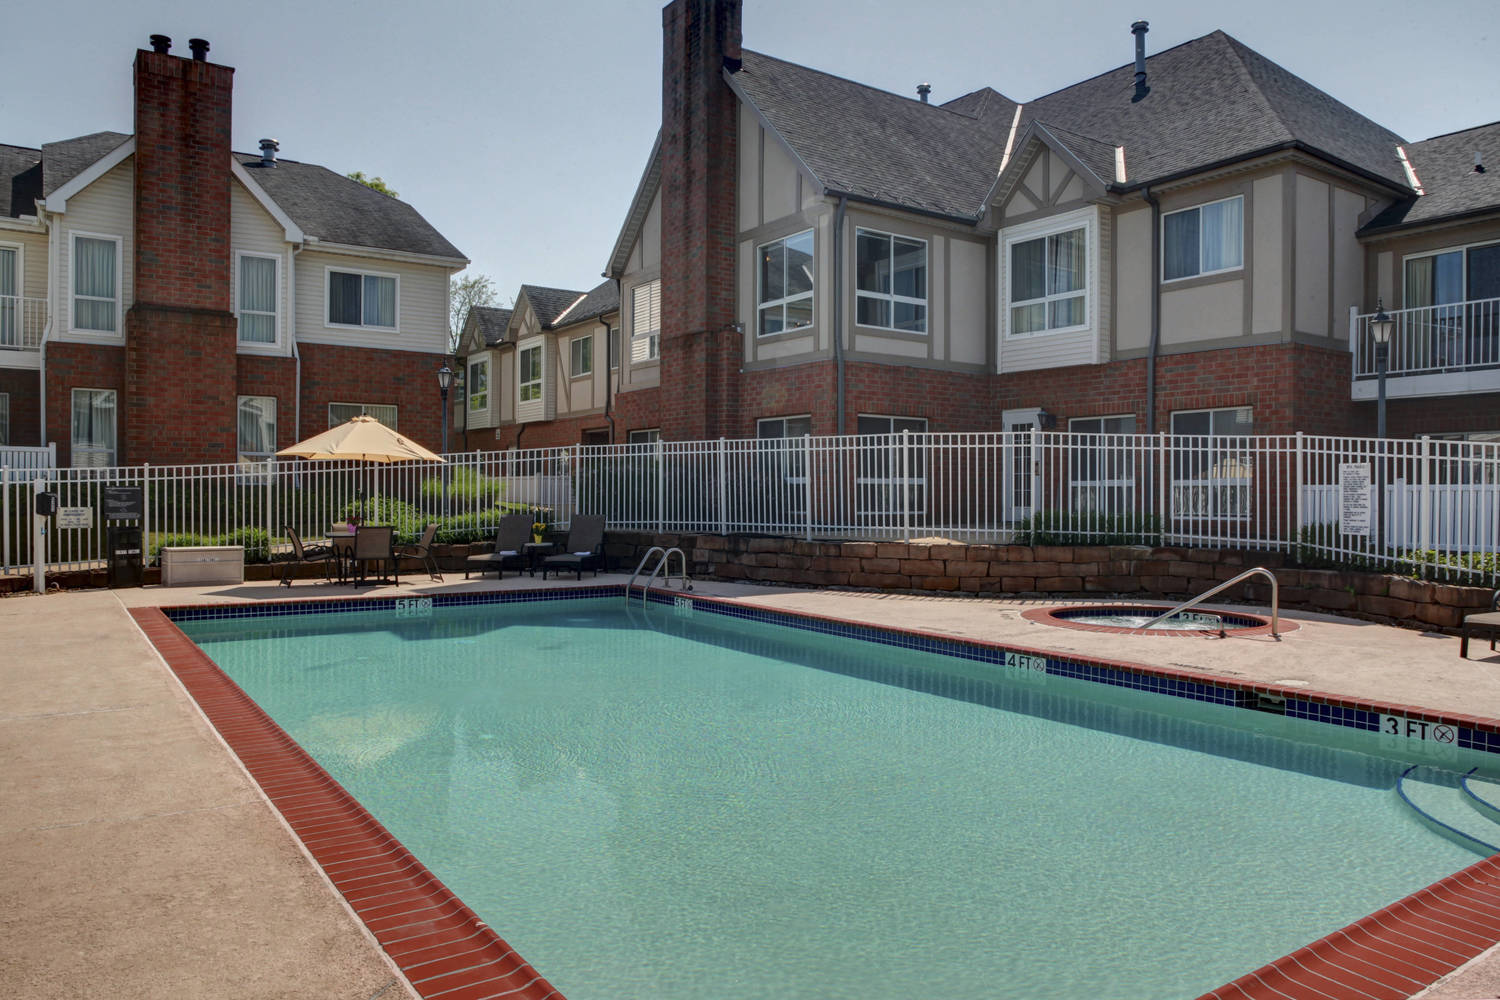 Our seasonal outdoor pool and whirlpool is inviting for our guest to gather with friend, family or co-workers. Handicap Accessible.